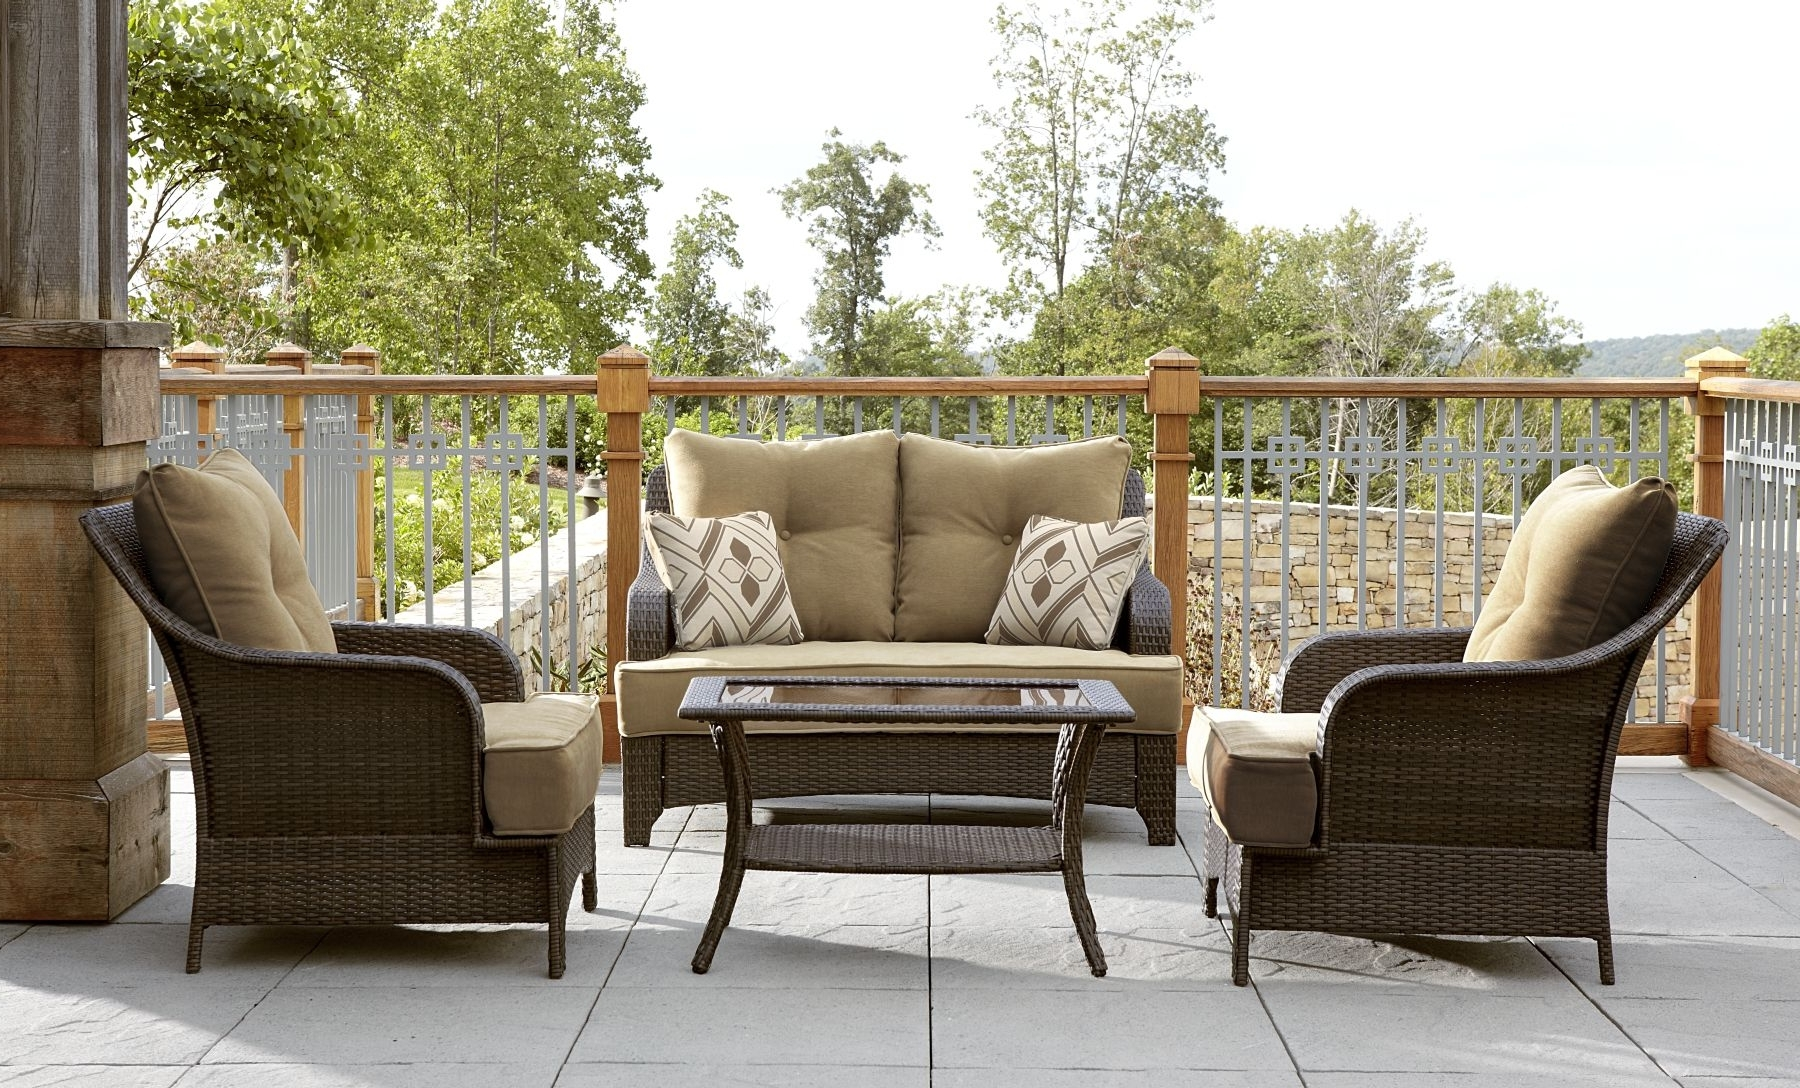 Patio : Lazy Boy Patio Furniture Cushion Replacements Covers Within Well Known Lazy Boy Patio Conversation Sets (View 5 of 15)